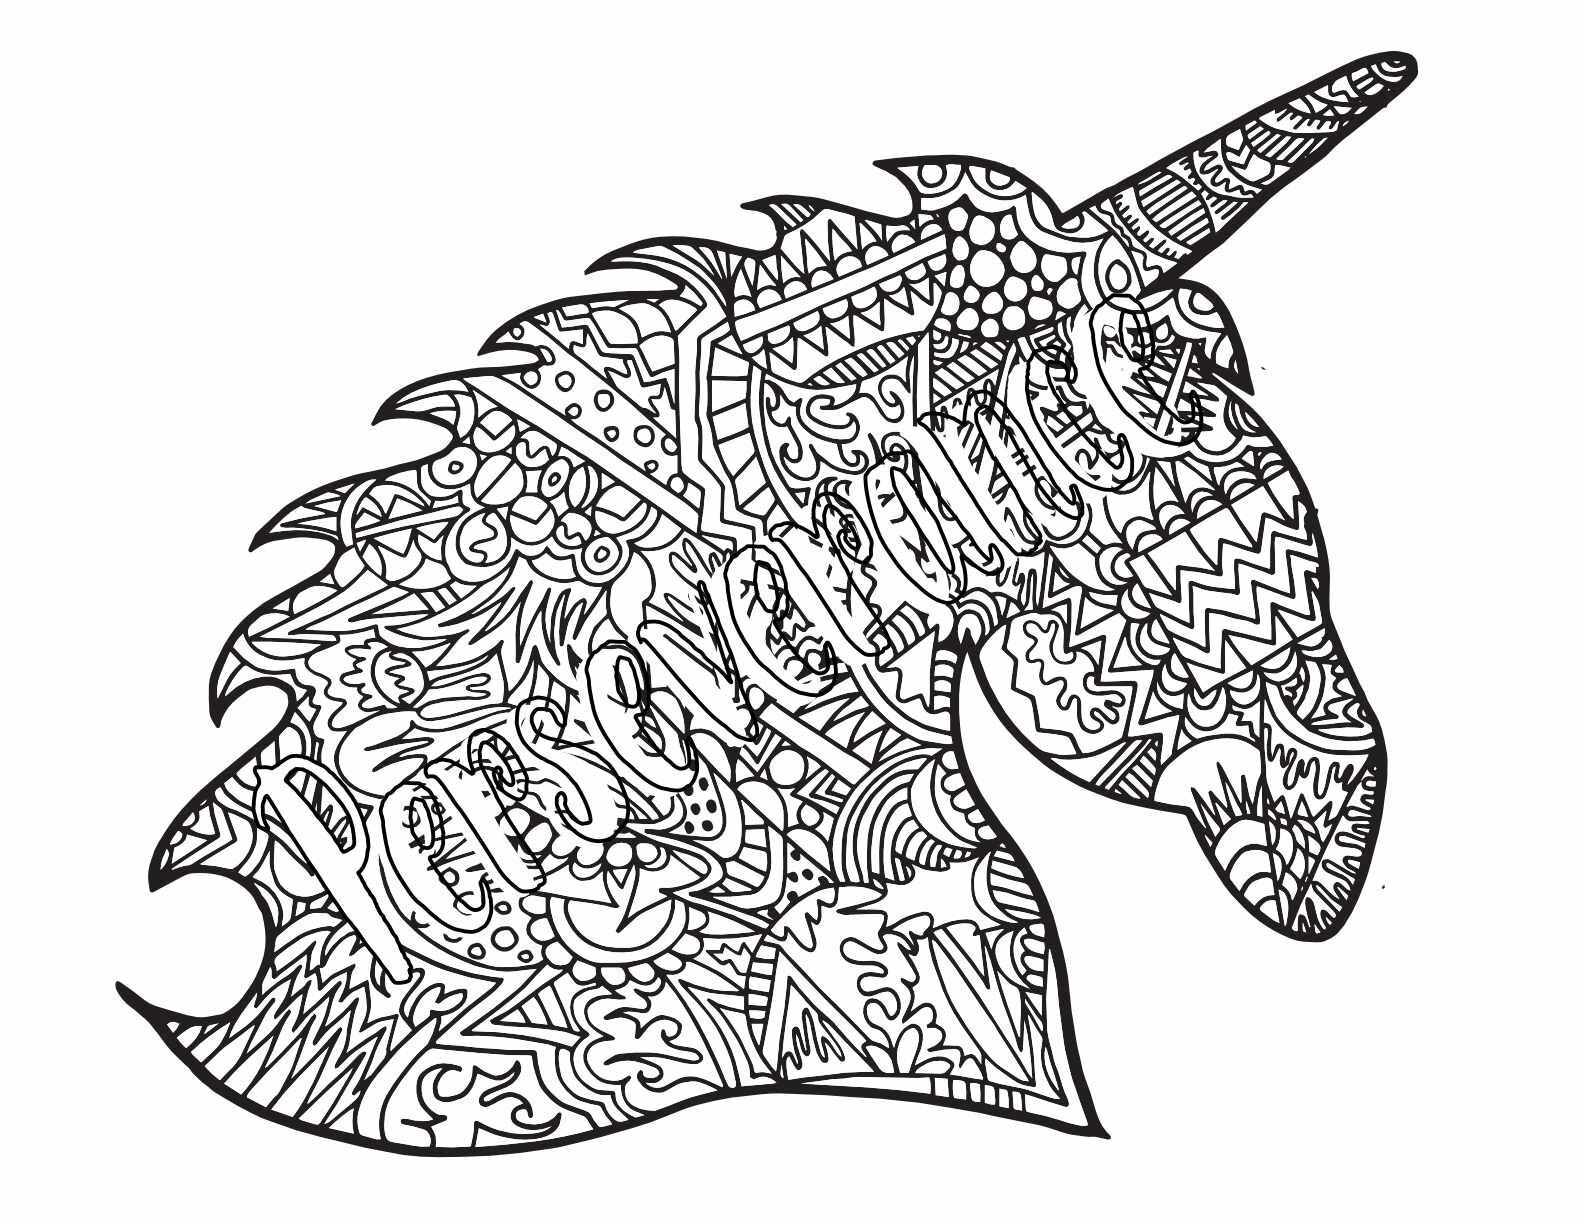 Perseverance 2 Free Printable Coloring Pages In 2020 Free